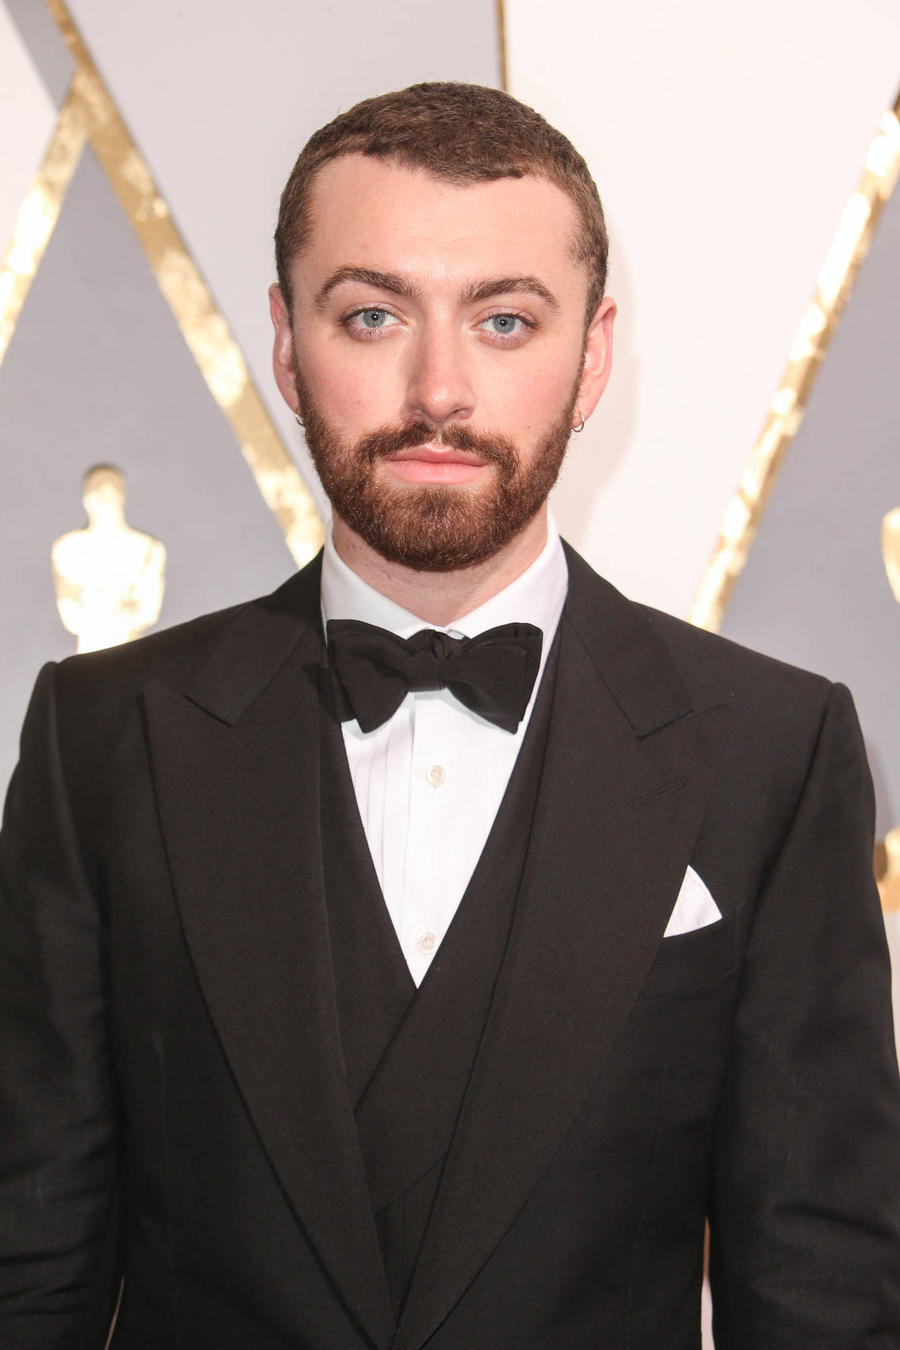 Sam Smith Returns To Twitter To Pay Tribute To George Michael